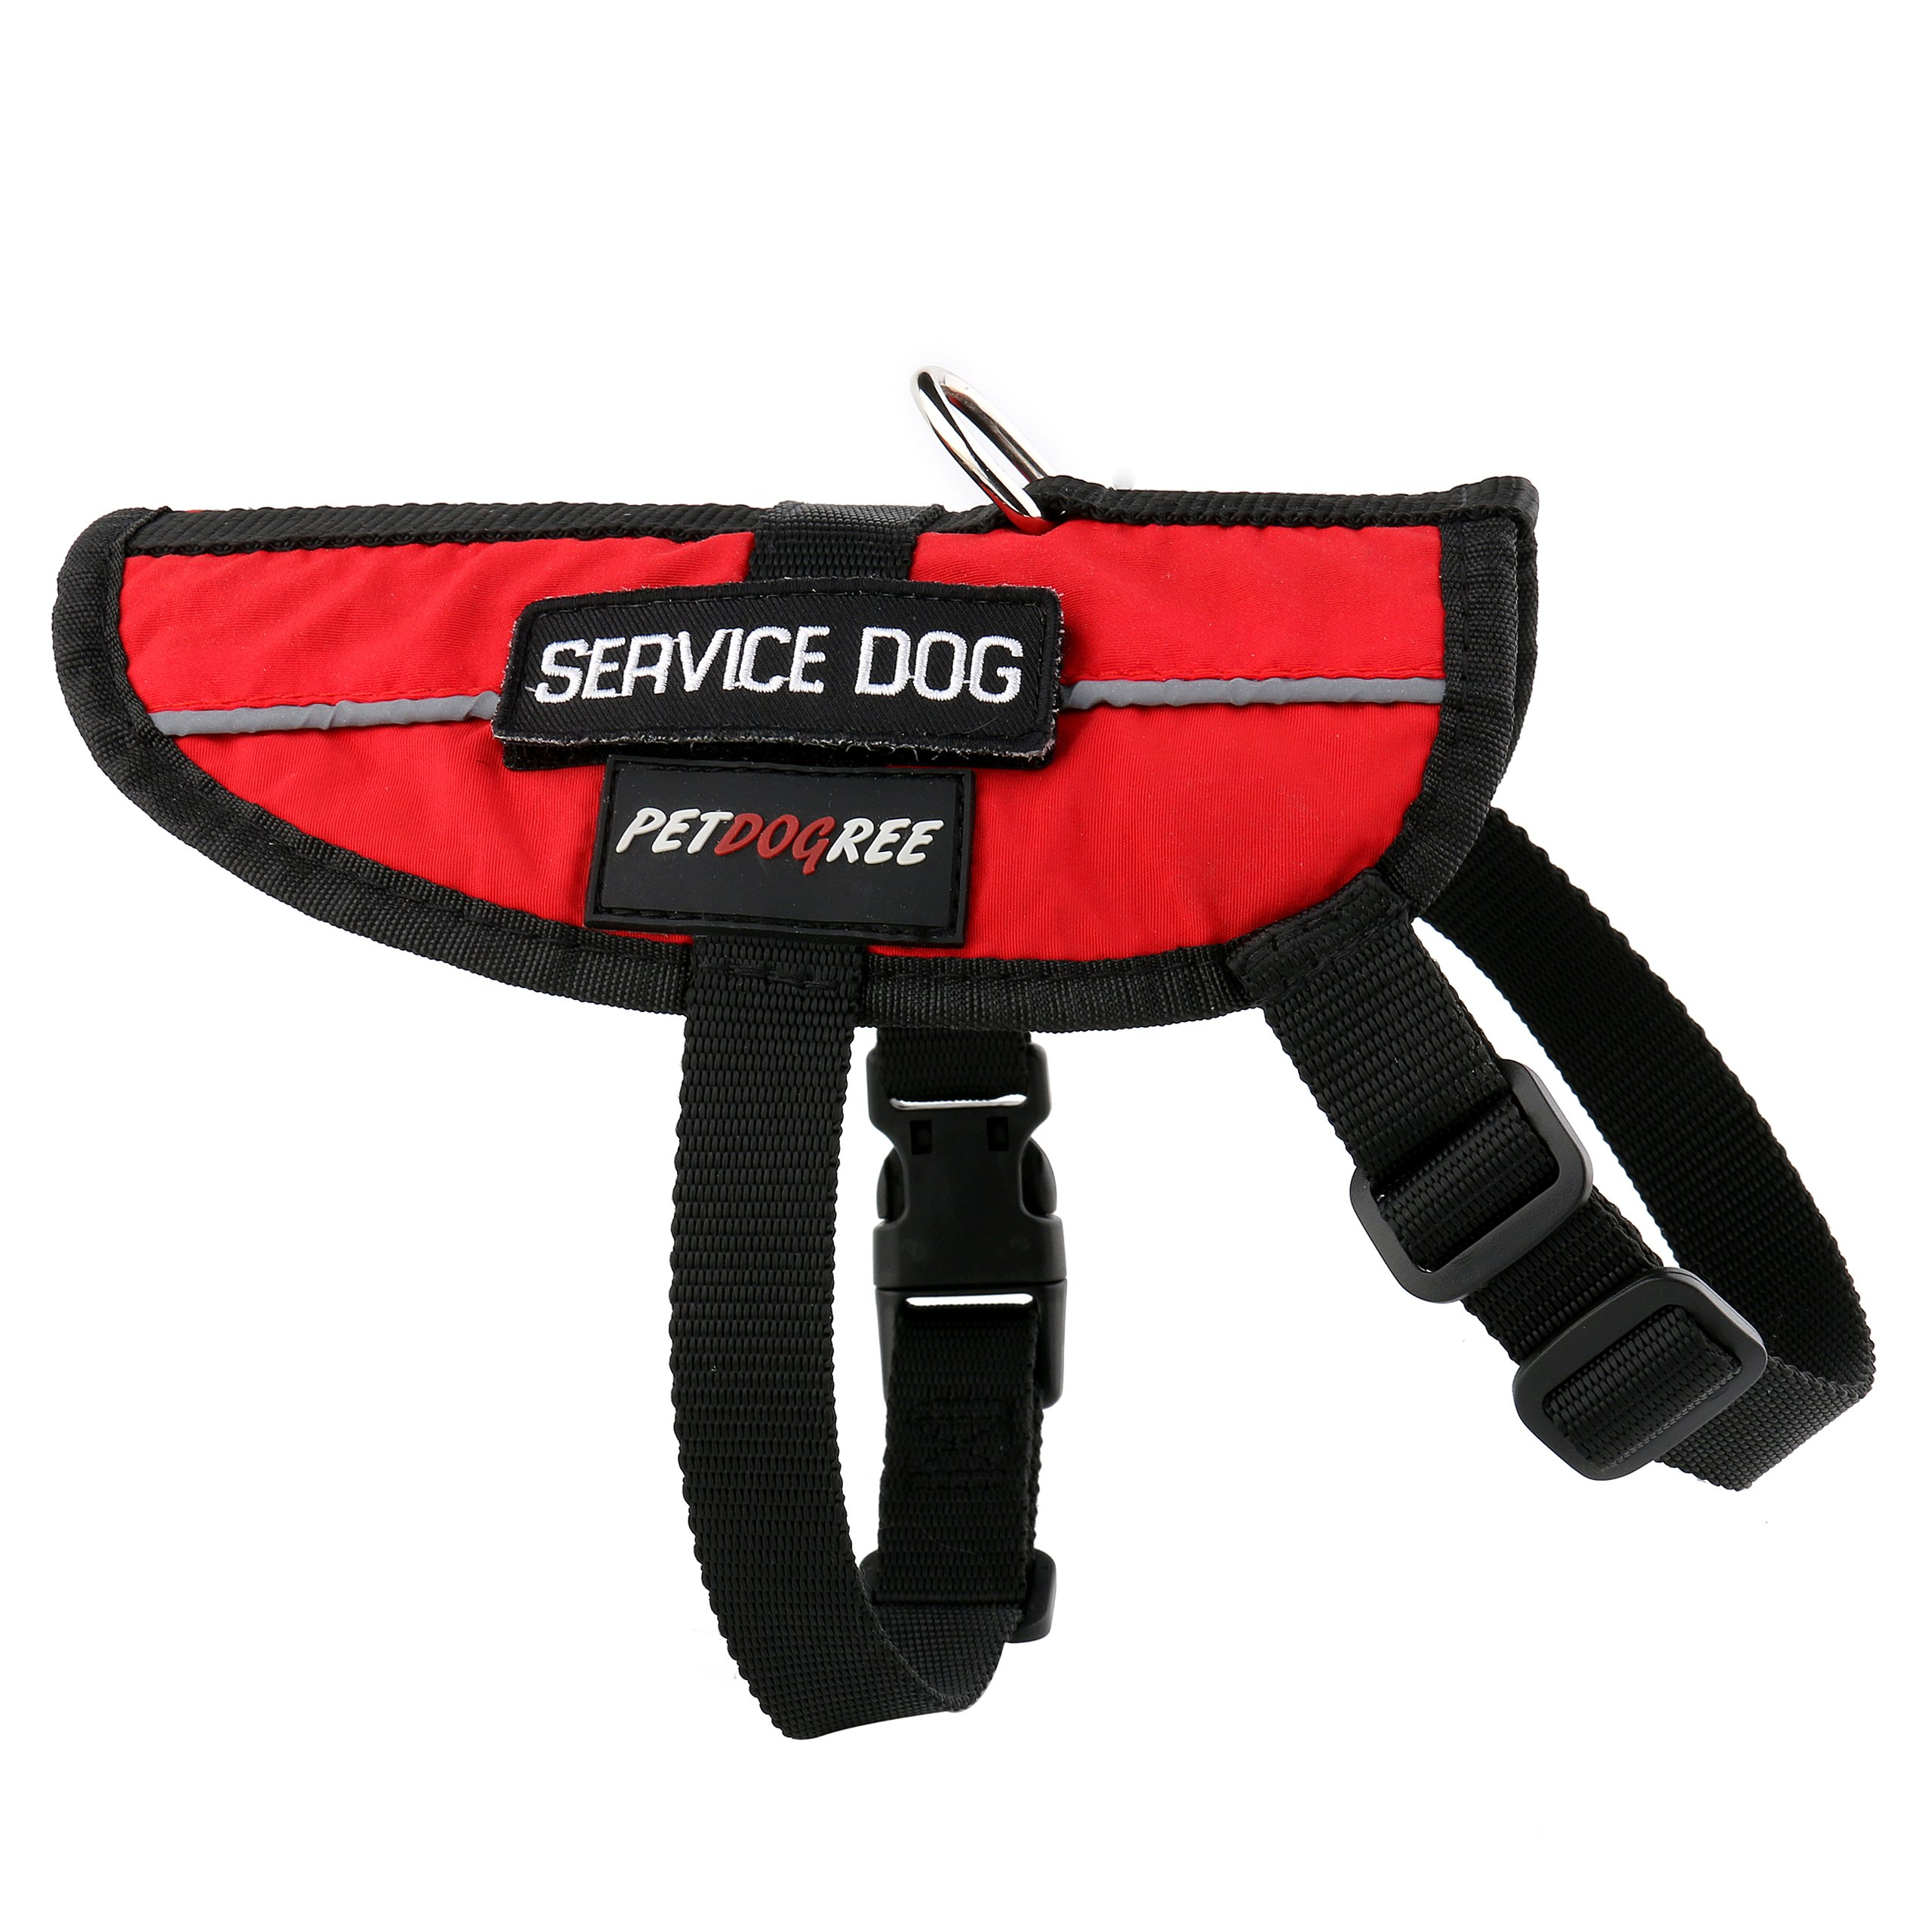 Petdogree Lightweight Reflective Red Service Dog Vest/Harness with Removable Patches (Various Sizes). by Petdogree (Image #3)